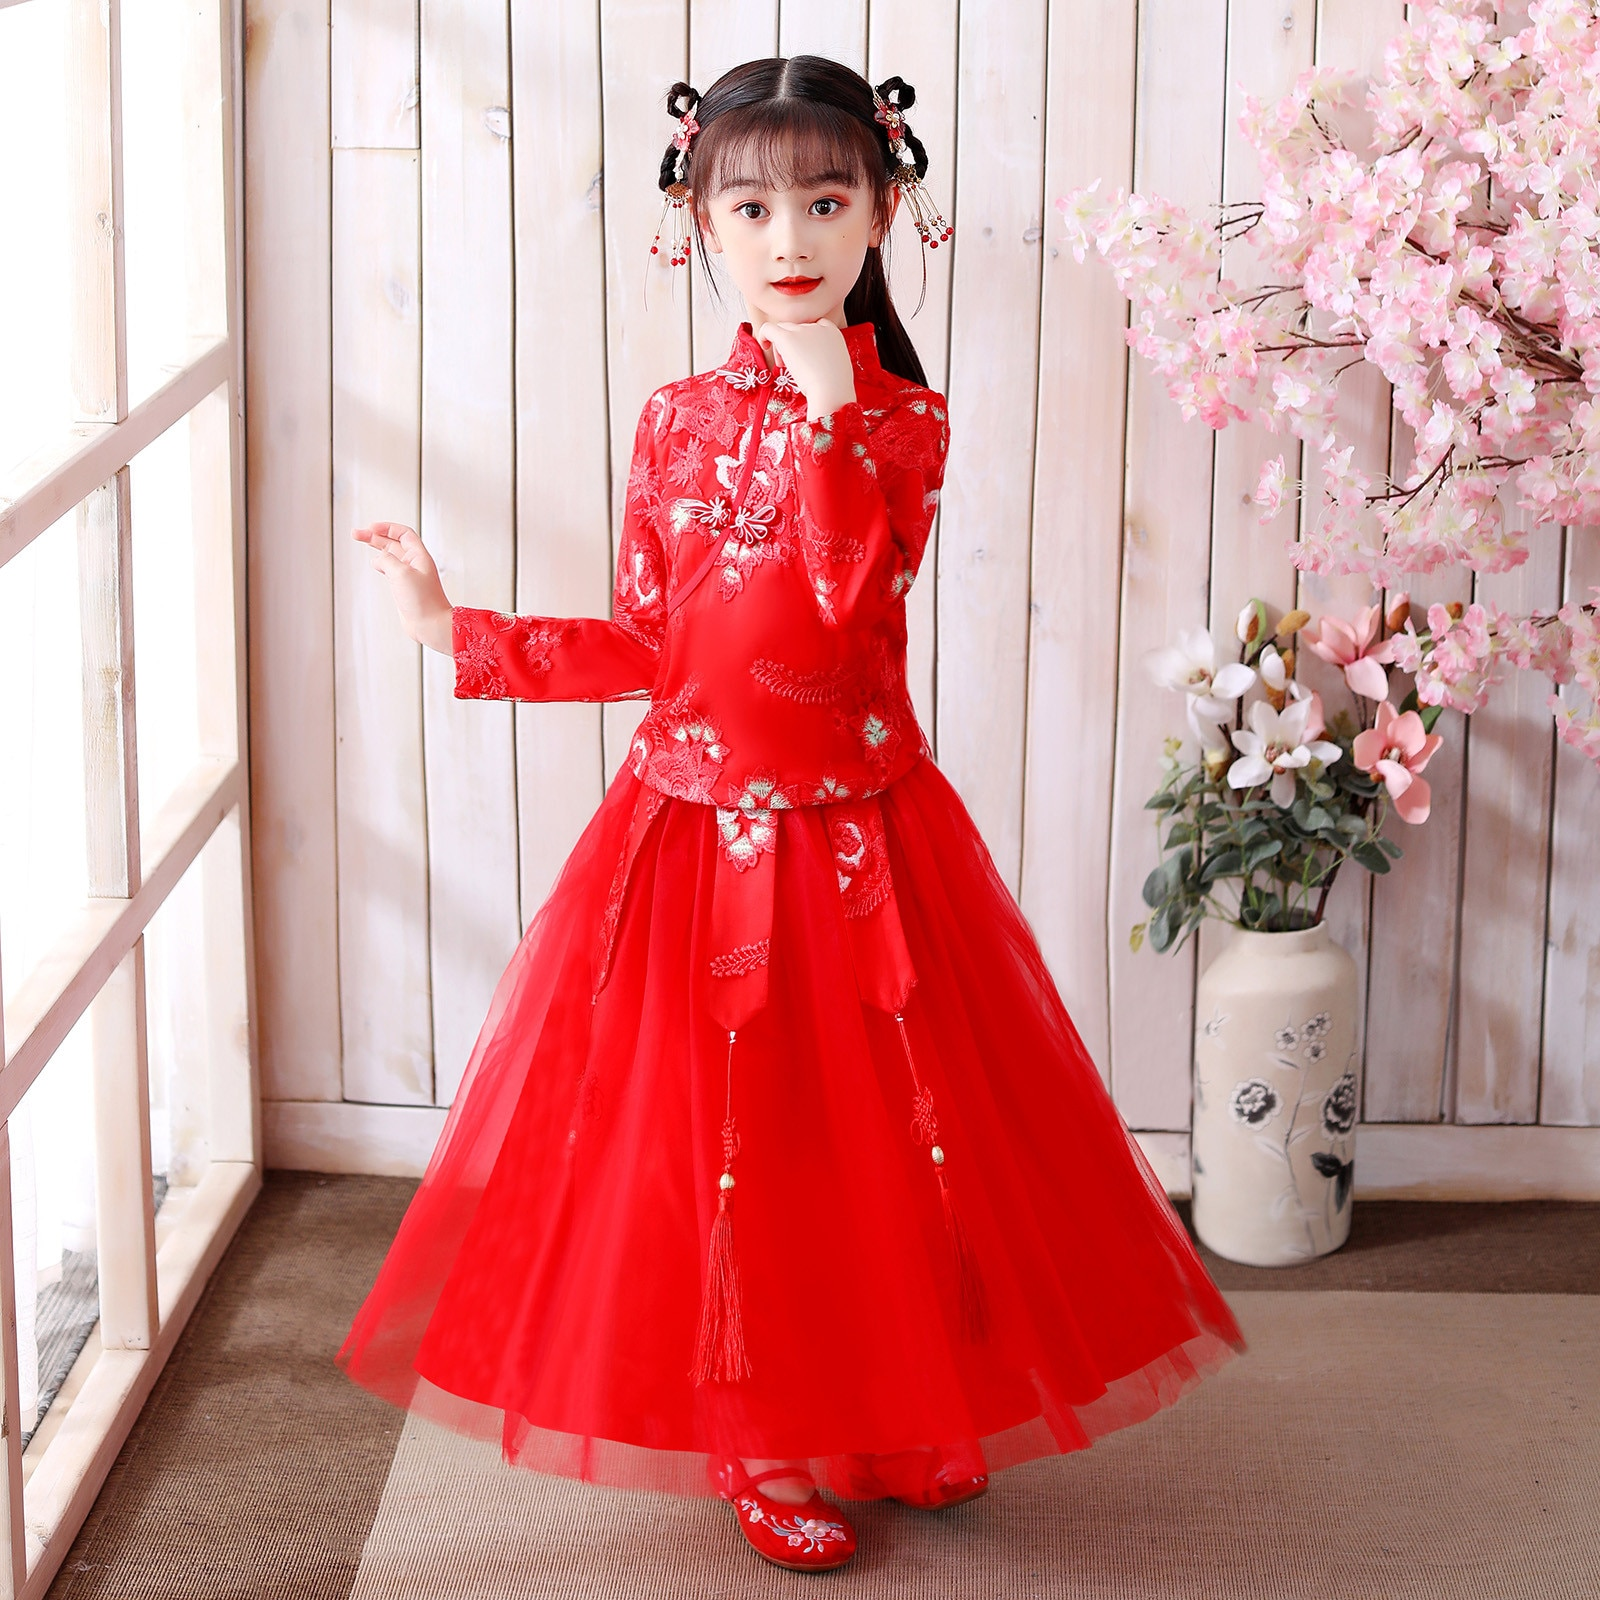 Red Mesh Dress with Bowknot for Girls Toddler Baby Kids Girls Lunar Chinese New Year Tang Suit  Princess Dresses Set